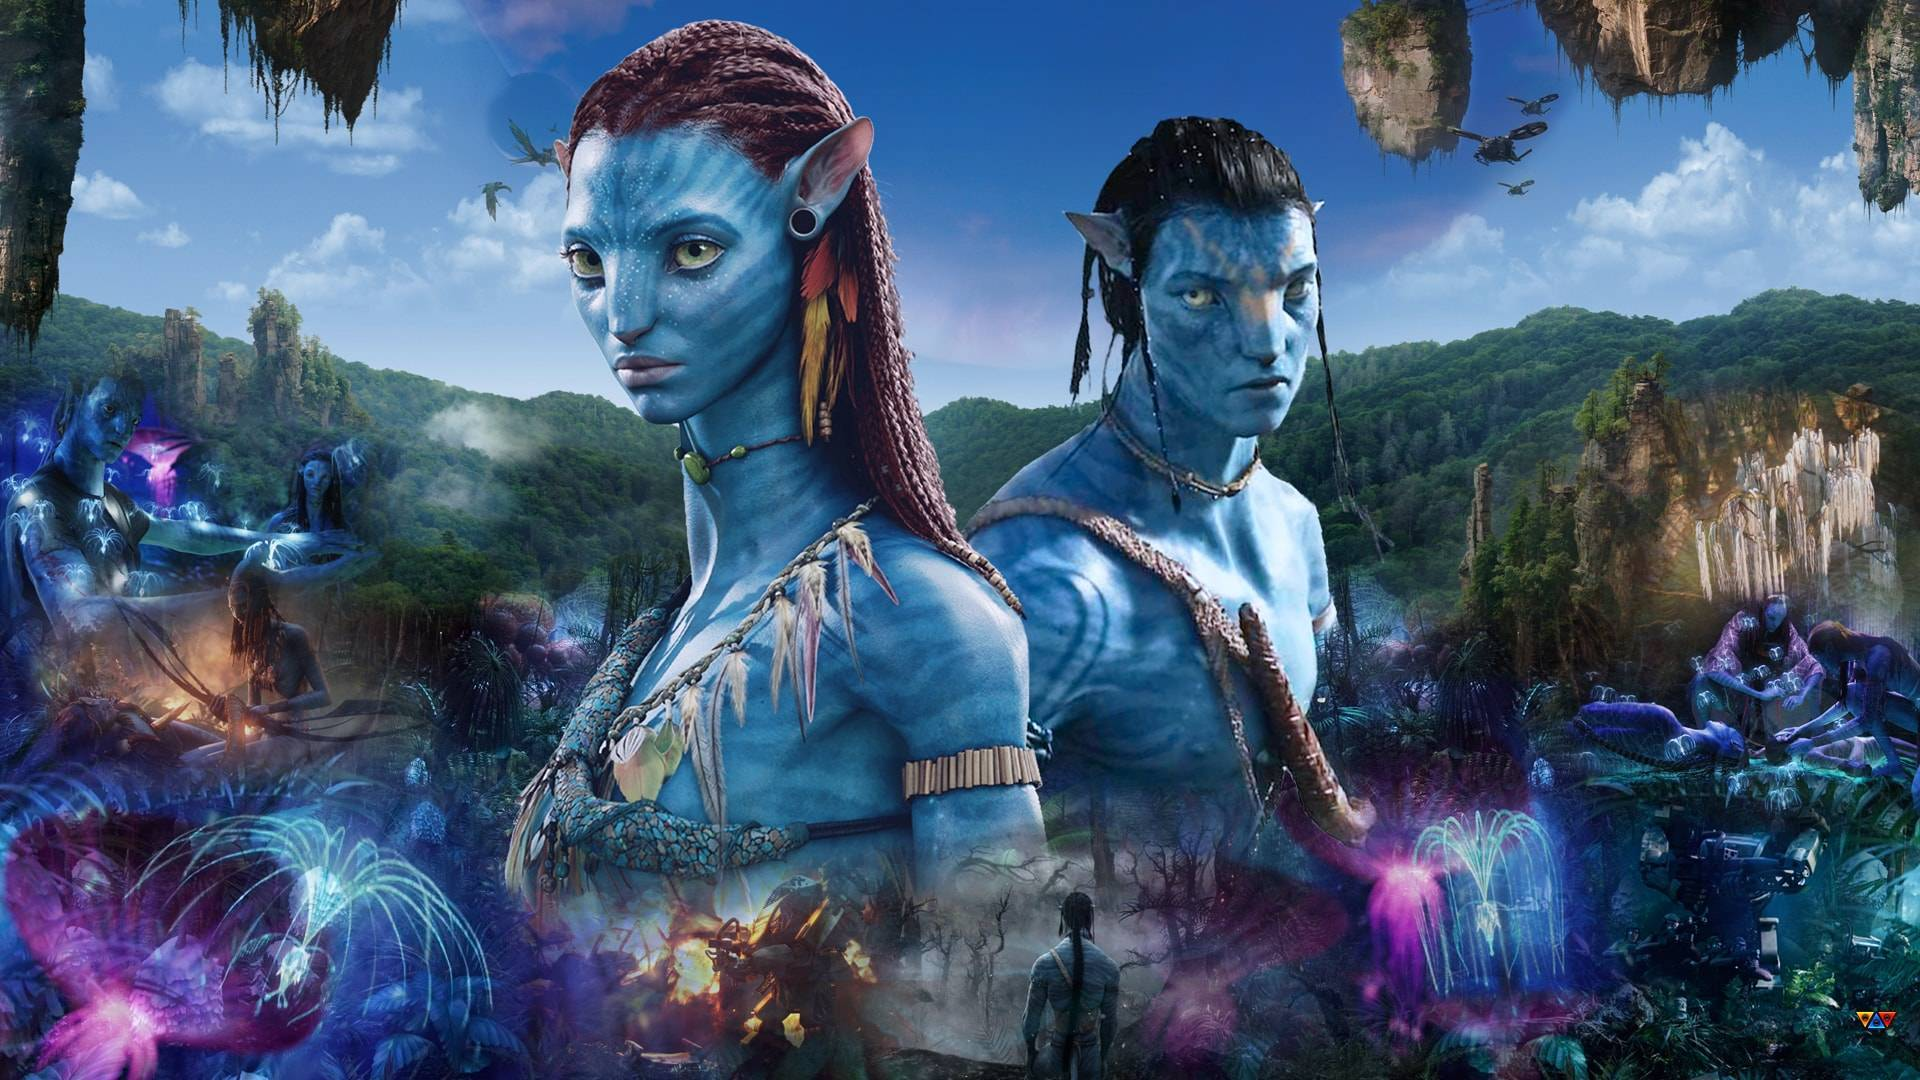 The complete soundtrack of james cameron's film - avatar, by james horner.